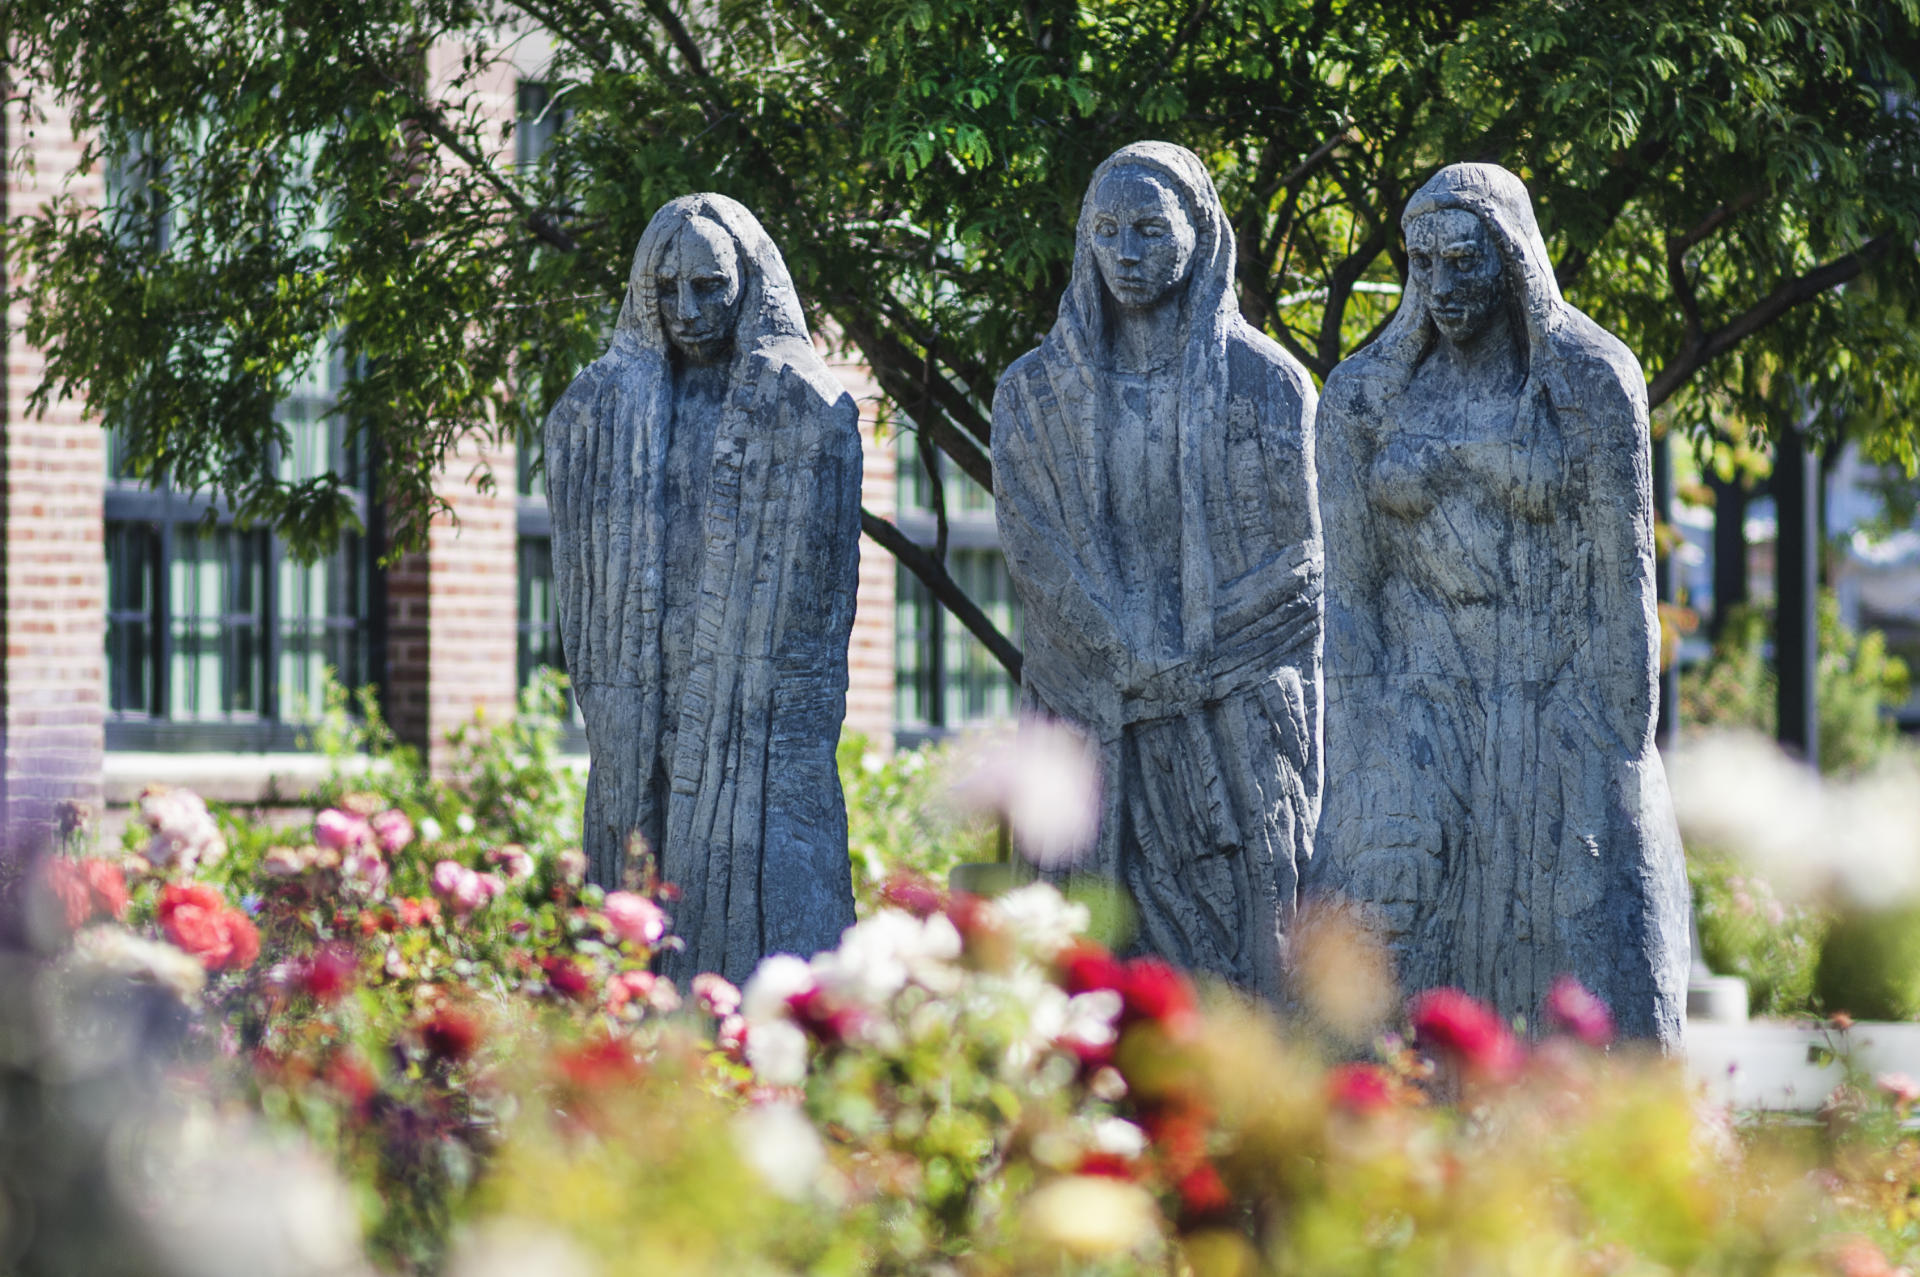 The Three Ladies Statue Sculpture Overlooks The George Peterson Rose Garden  At California State University Chico